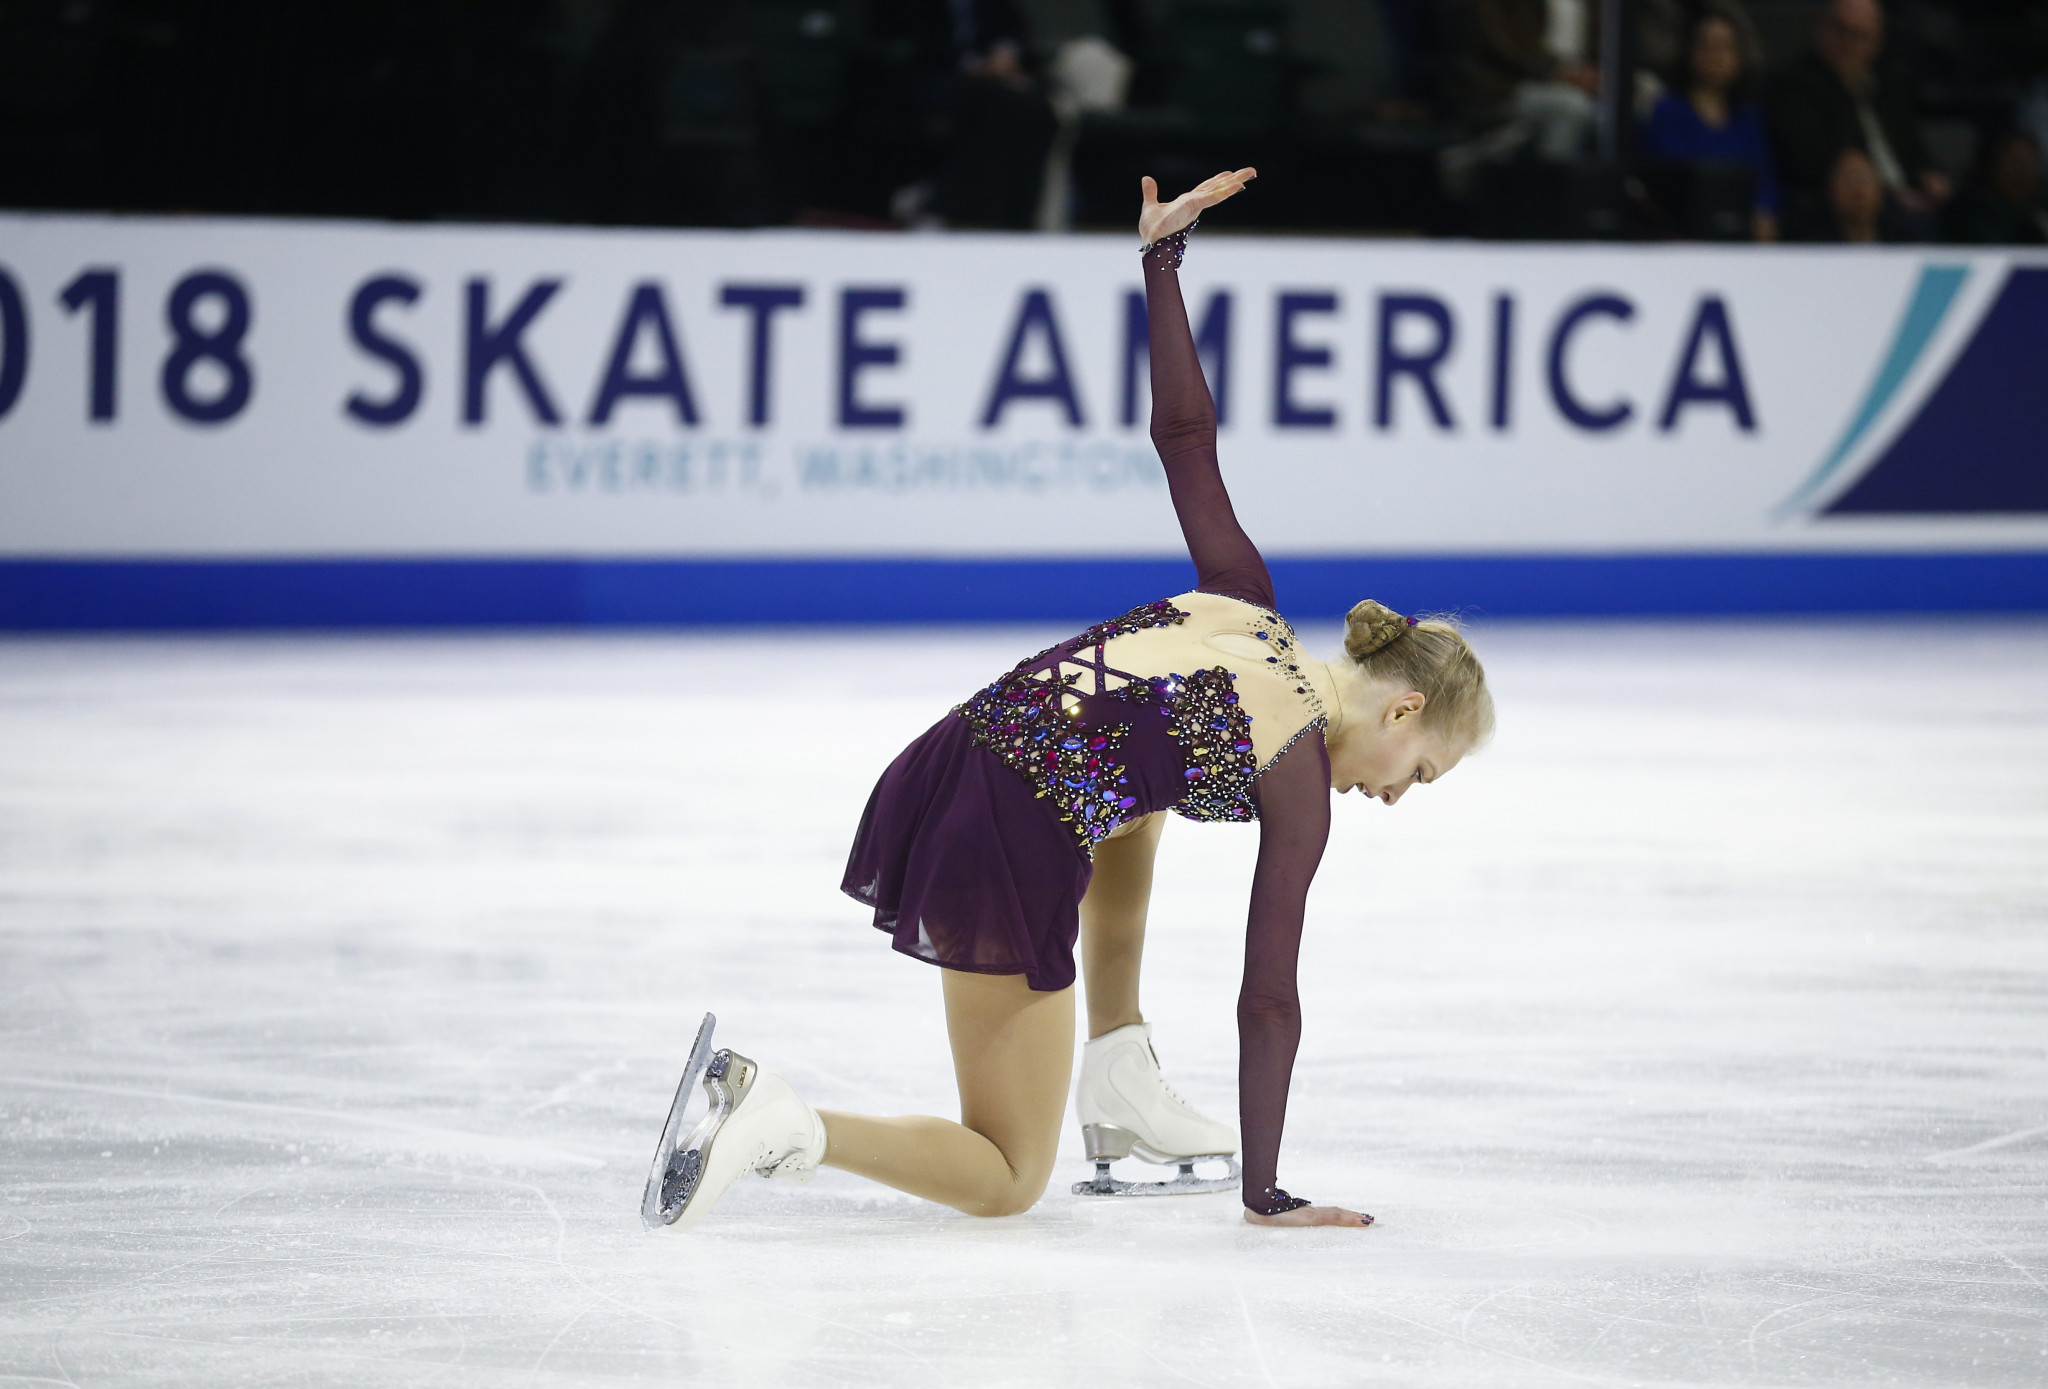 Skate America to be held in Las Vegas without spectators